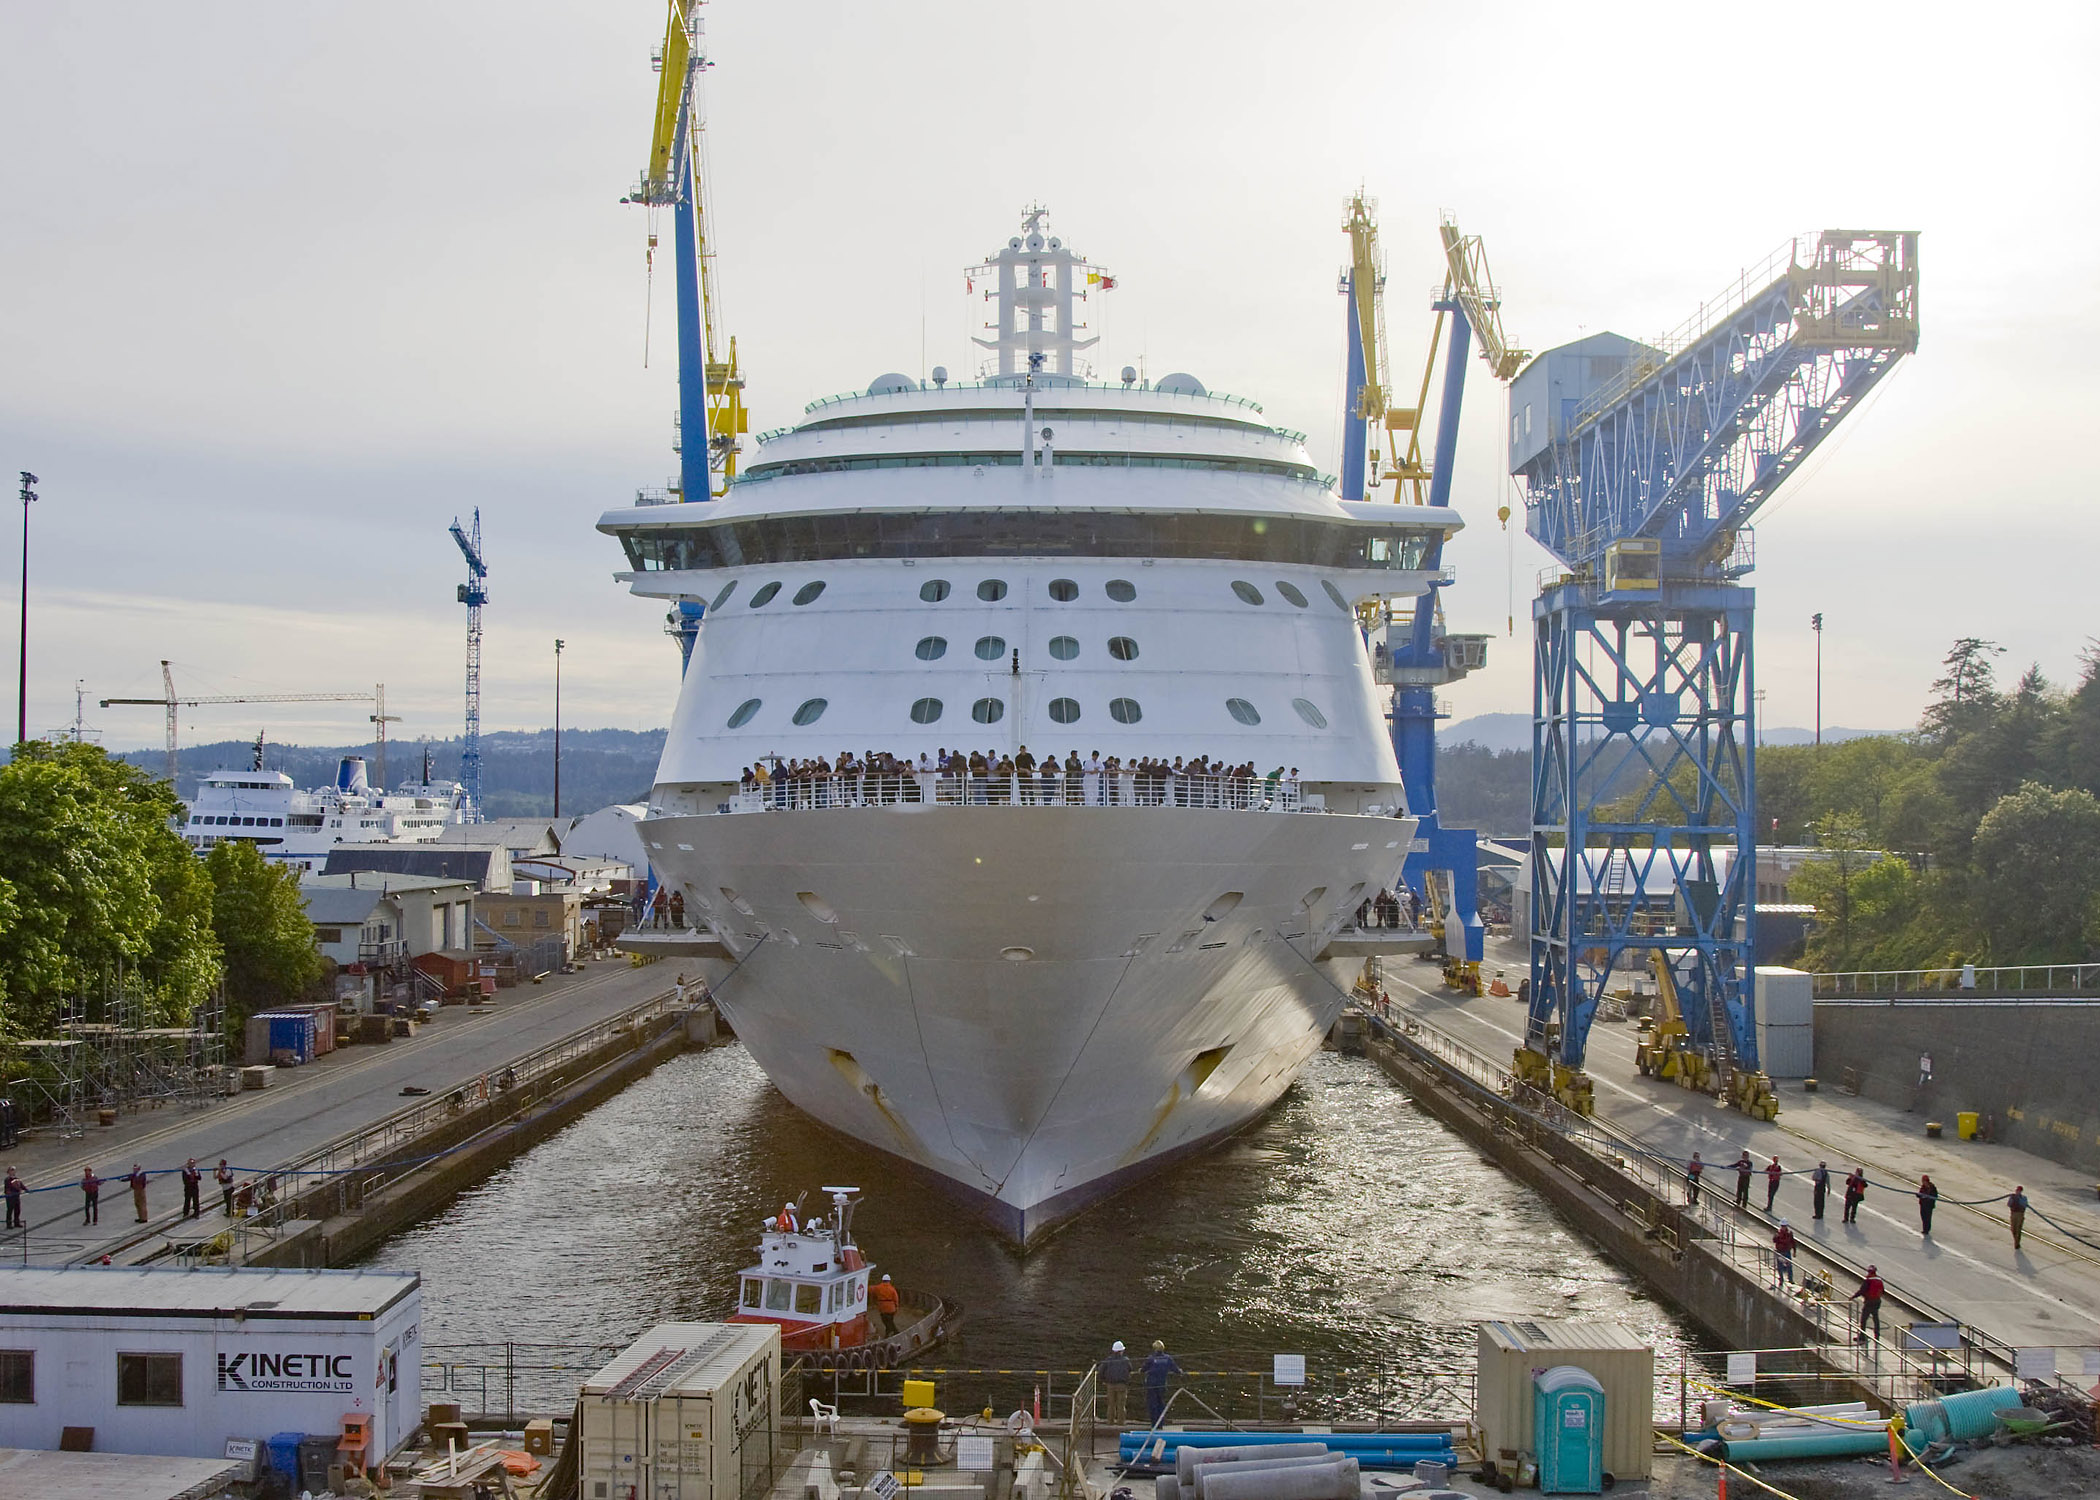 Radiance of the Seas Entering Dry-dock